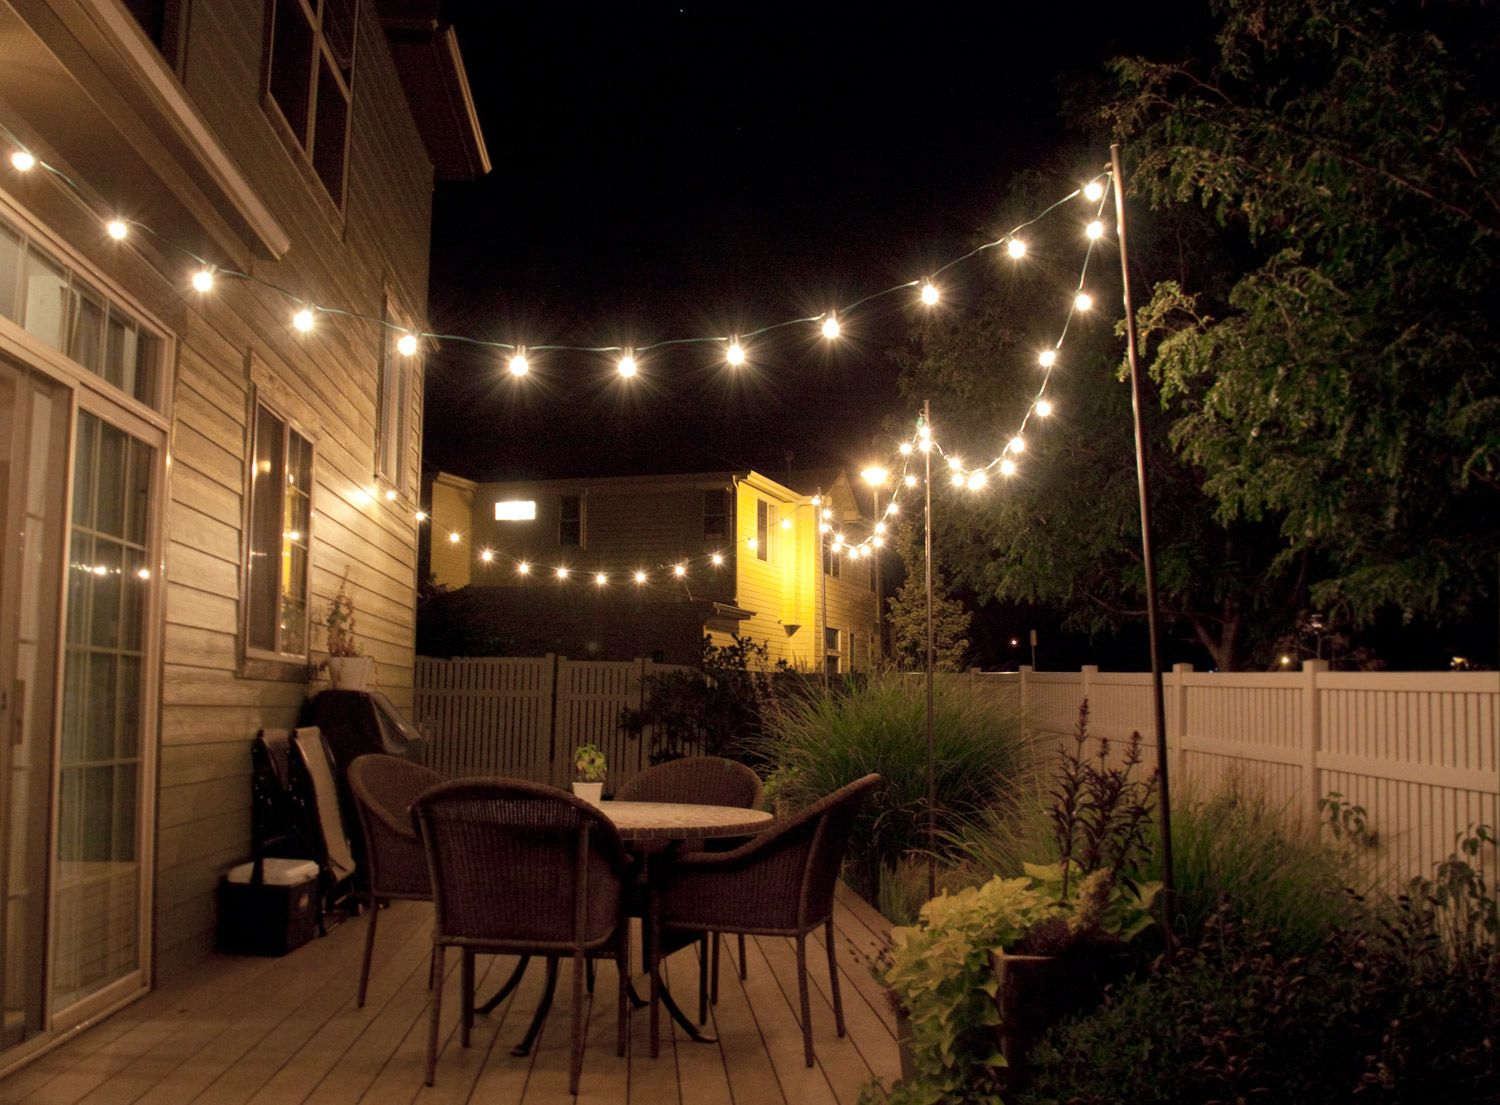 Outdoor Fairy Lights Glamorous How To Make Inexpensive Poles To Hang String Lights On  Café Style Inspiration